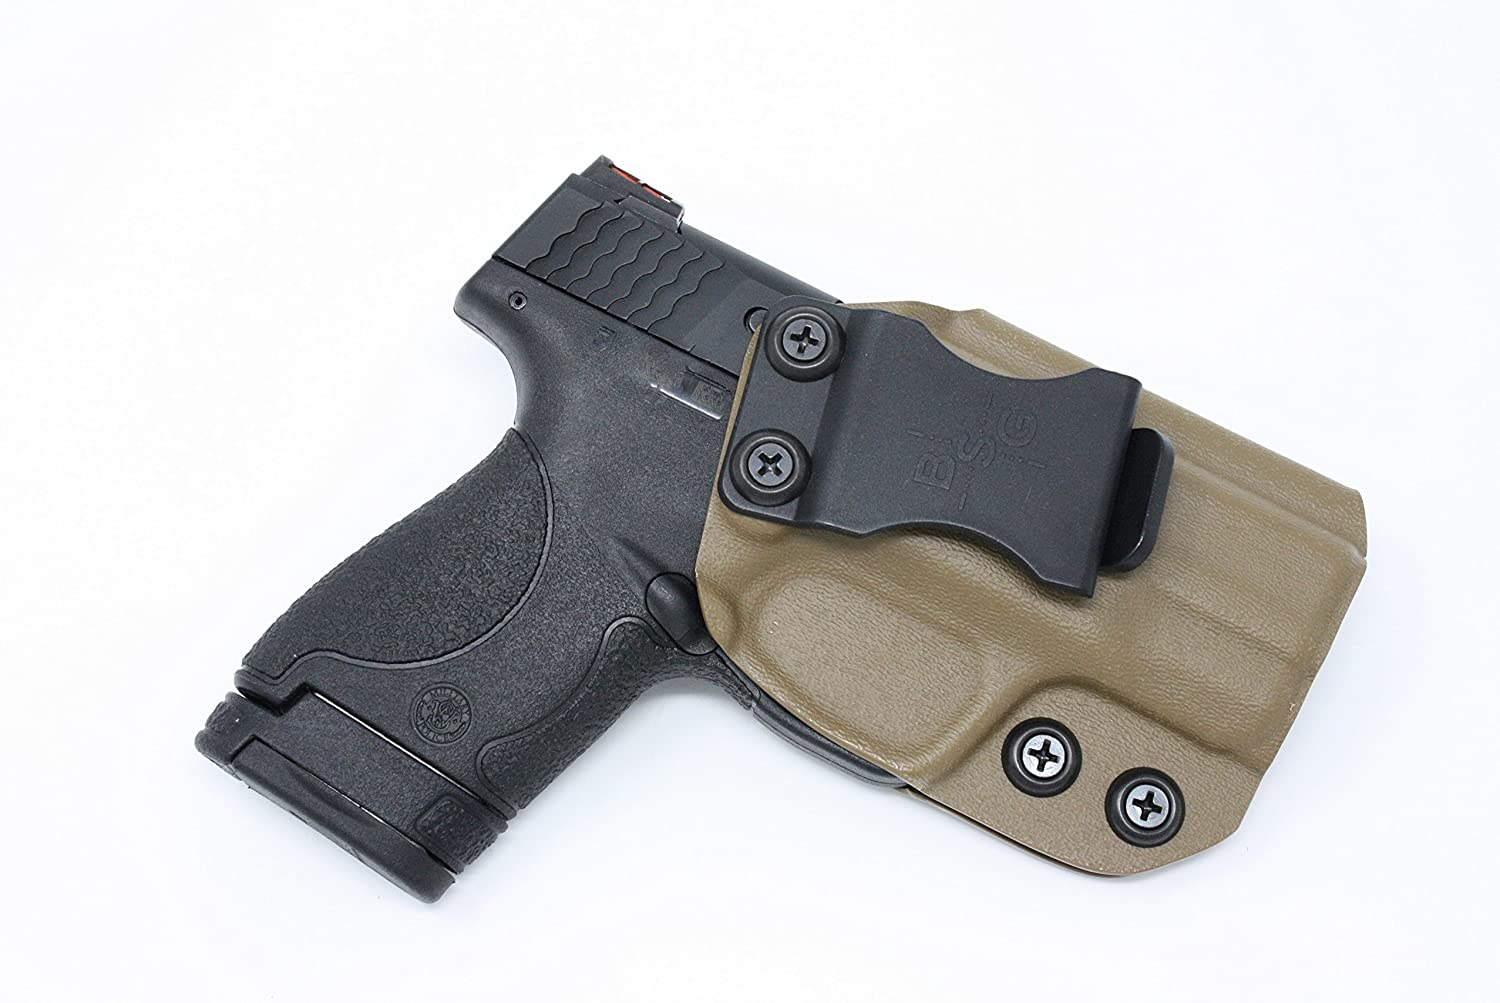 IWB KYDEX Holster: Fits Smith & Wesson M&P Shield 9MM / .40 Cal | M 2.0 & Performance Center) w/o Lights/Lasers | Made In USA | Custom Fit | Inside Waistband | Adjustable Cant / Retention System RH